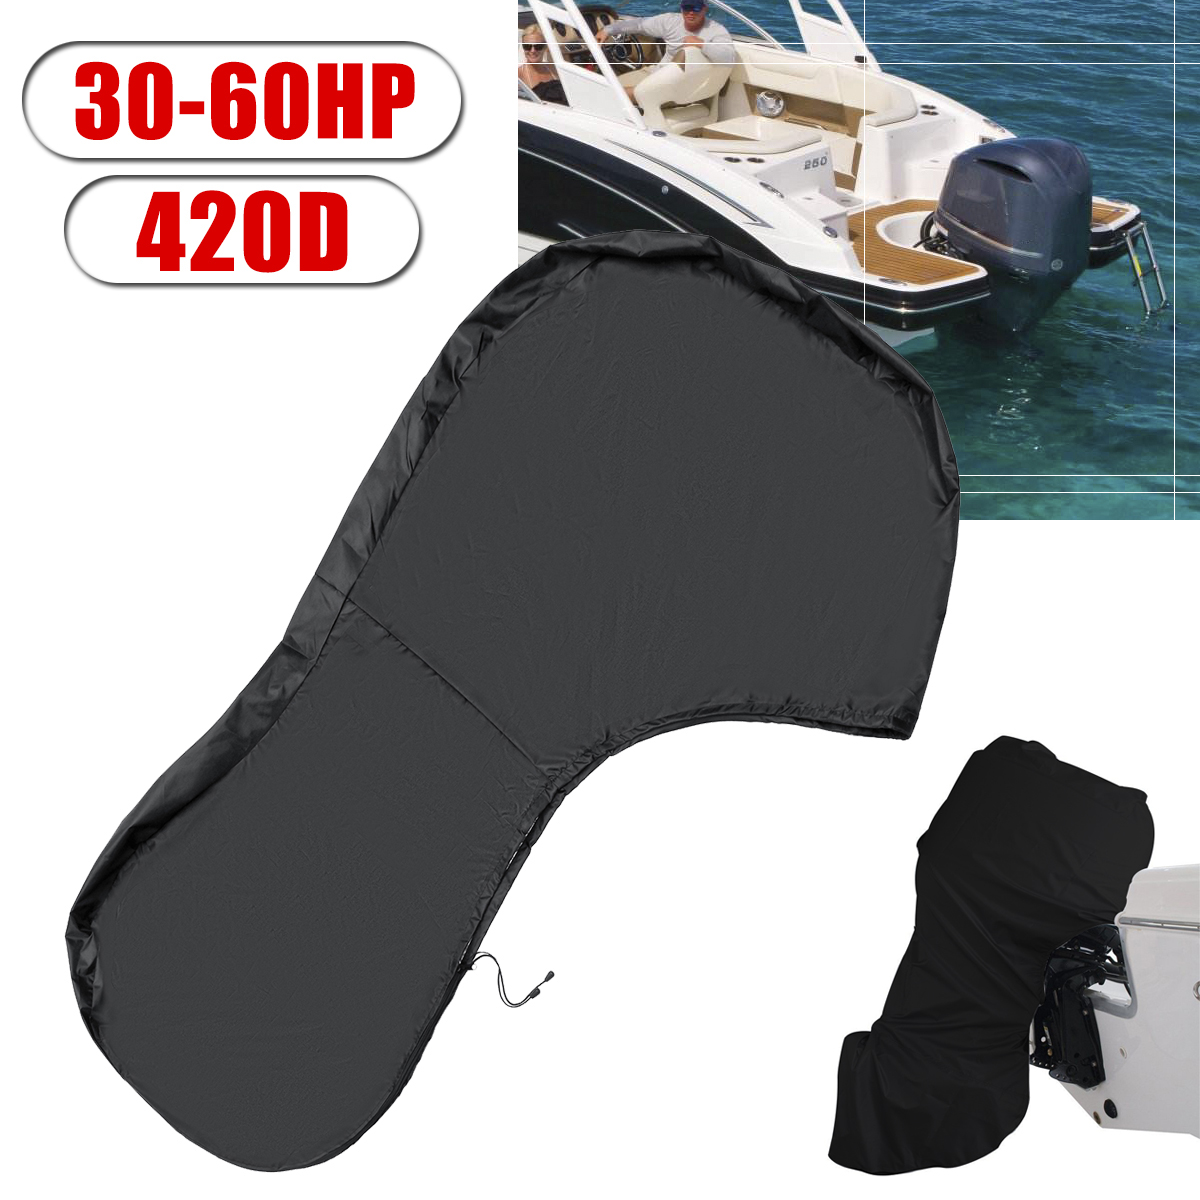 100HP 420D Full Outboard Engine Boat Cover Motor Waterproof Dust Protect 60HP